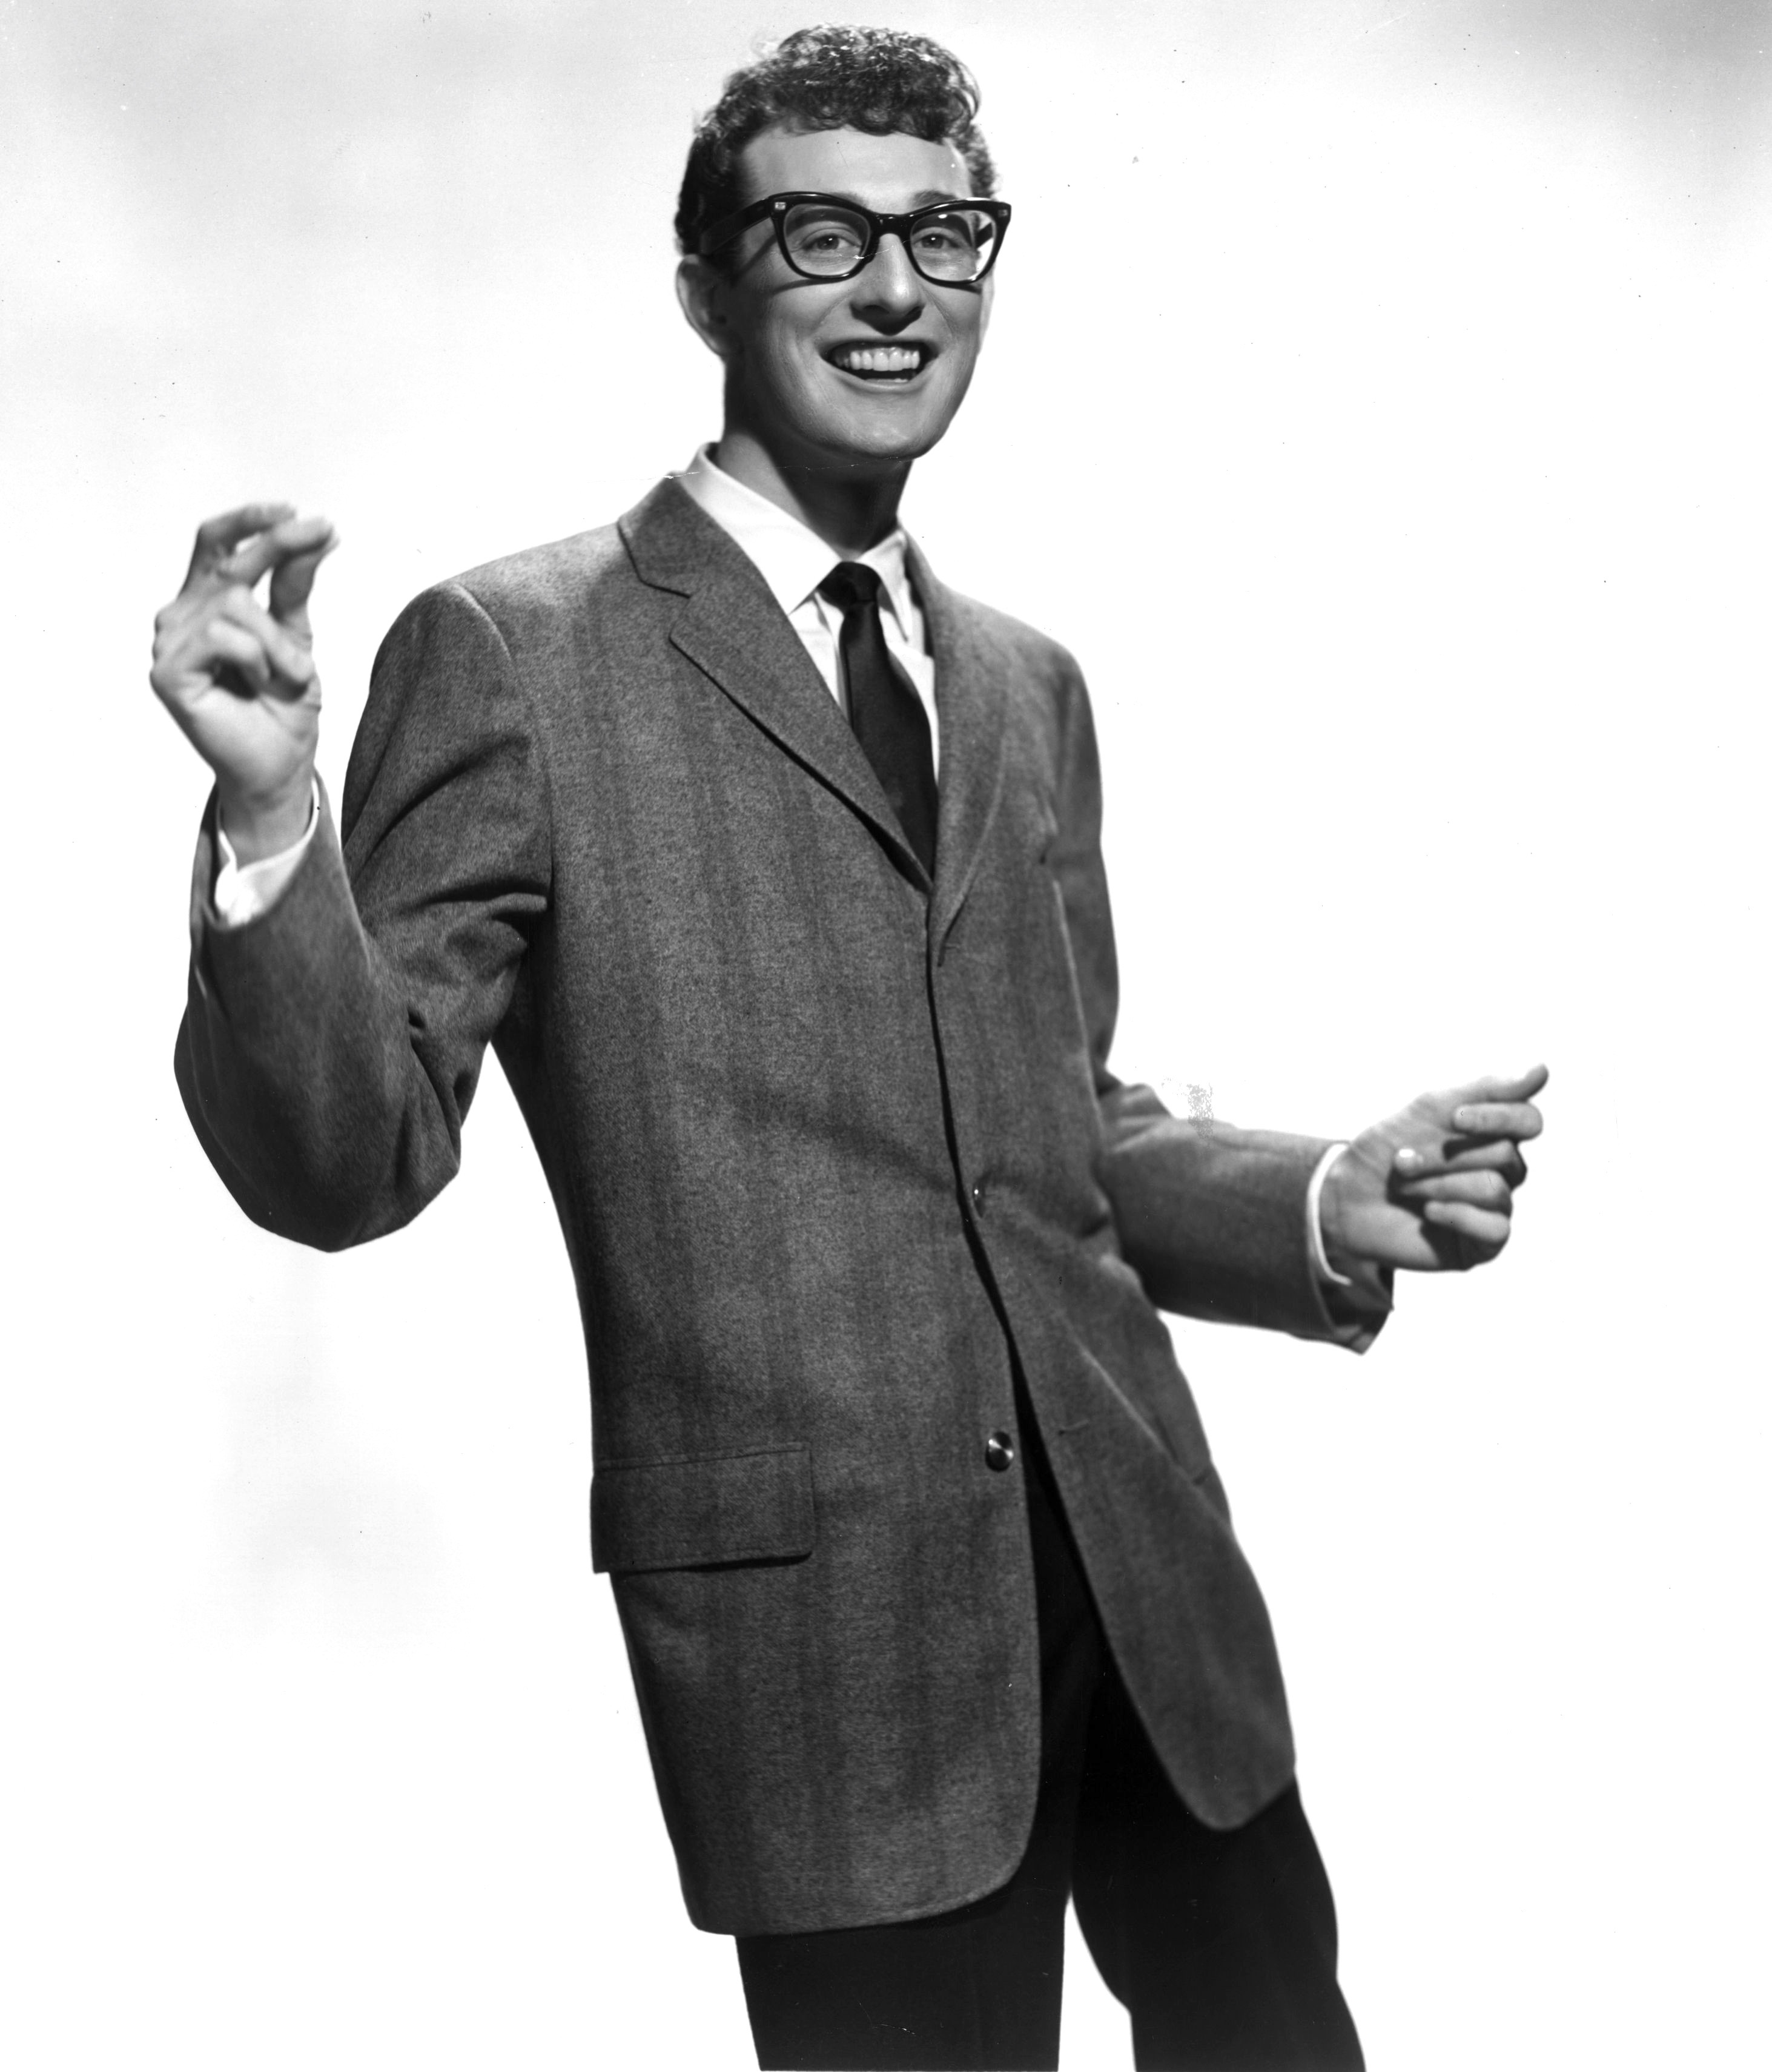 In a short time, Buddy Holly made a huge imprint on rock music and loved every minute.